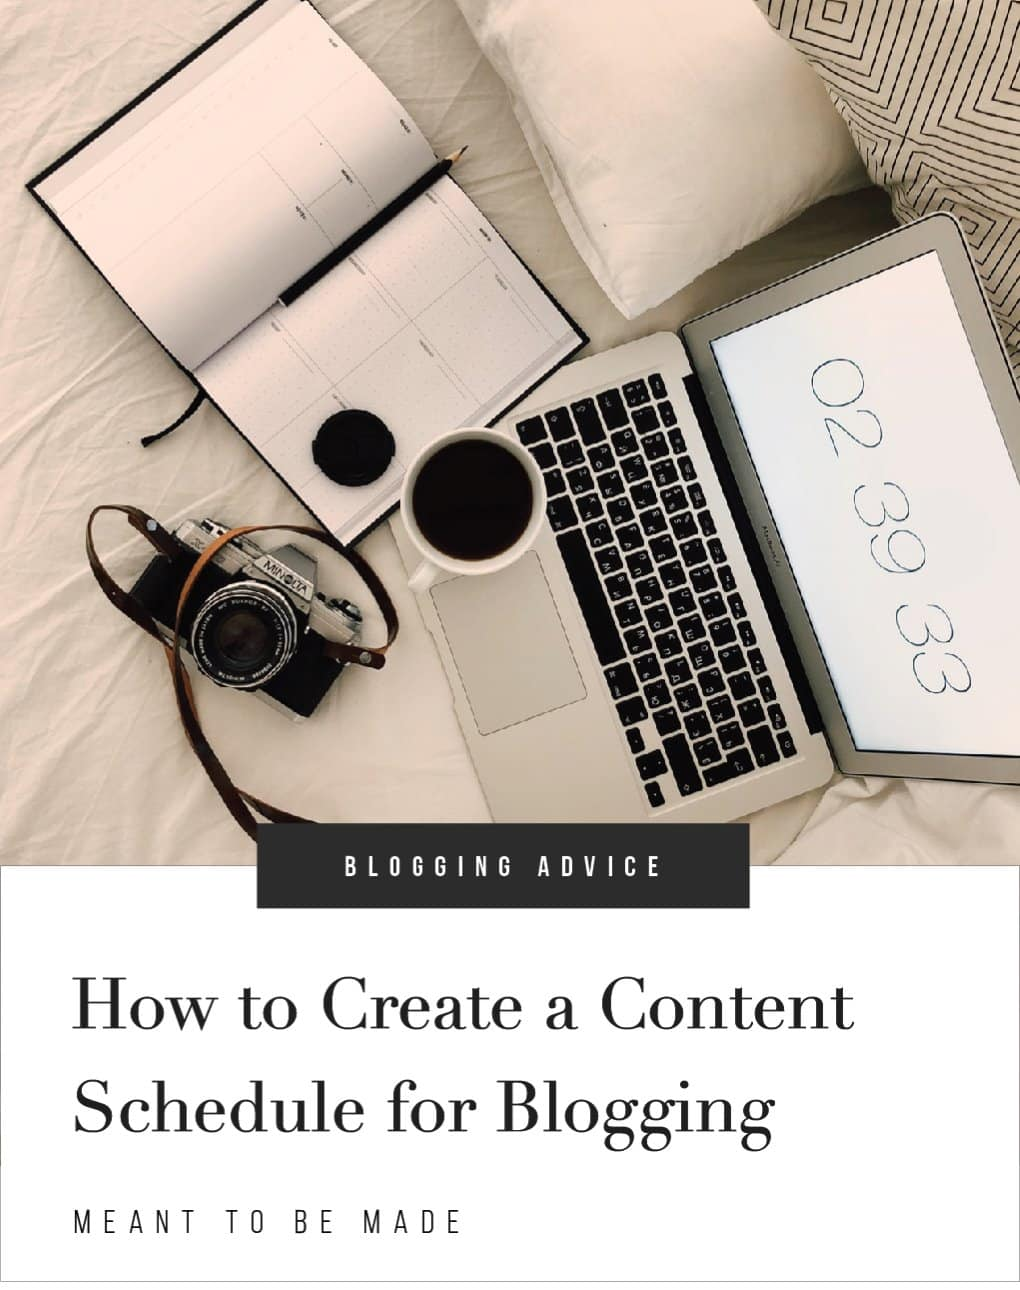 How to Create a Content Schedule for Blogging